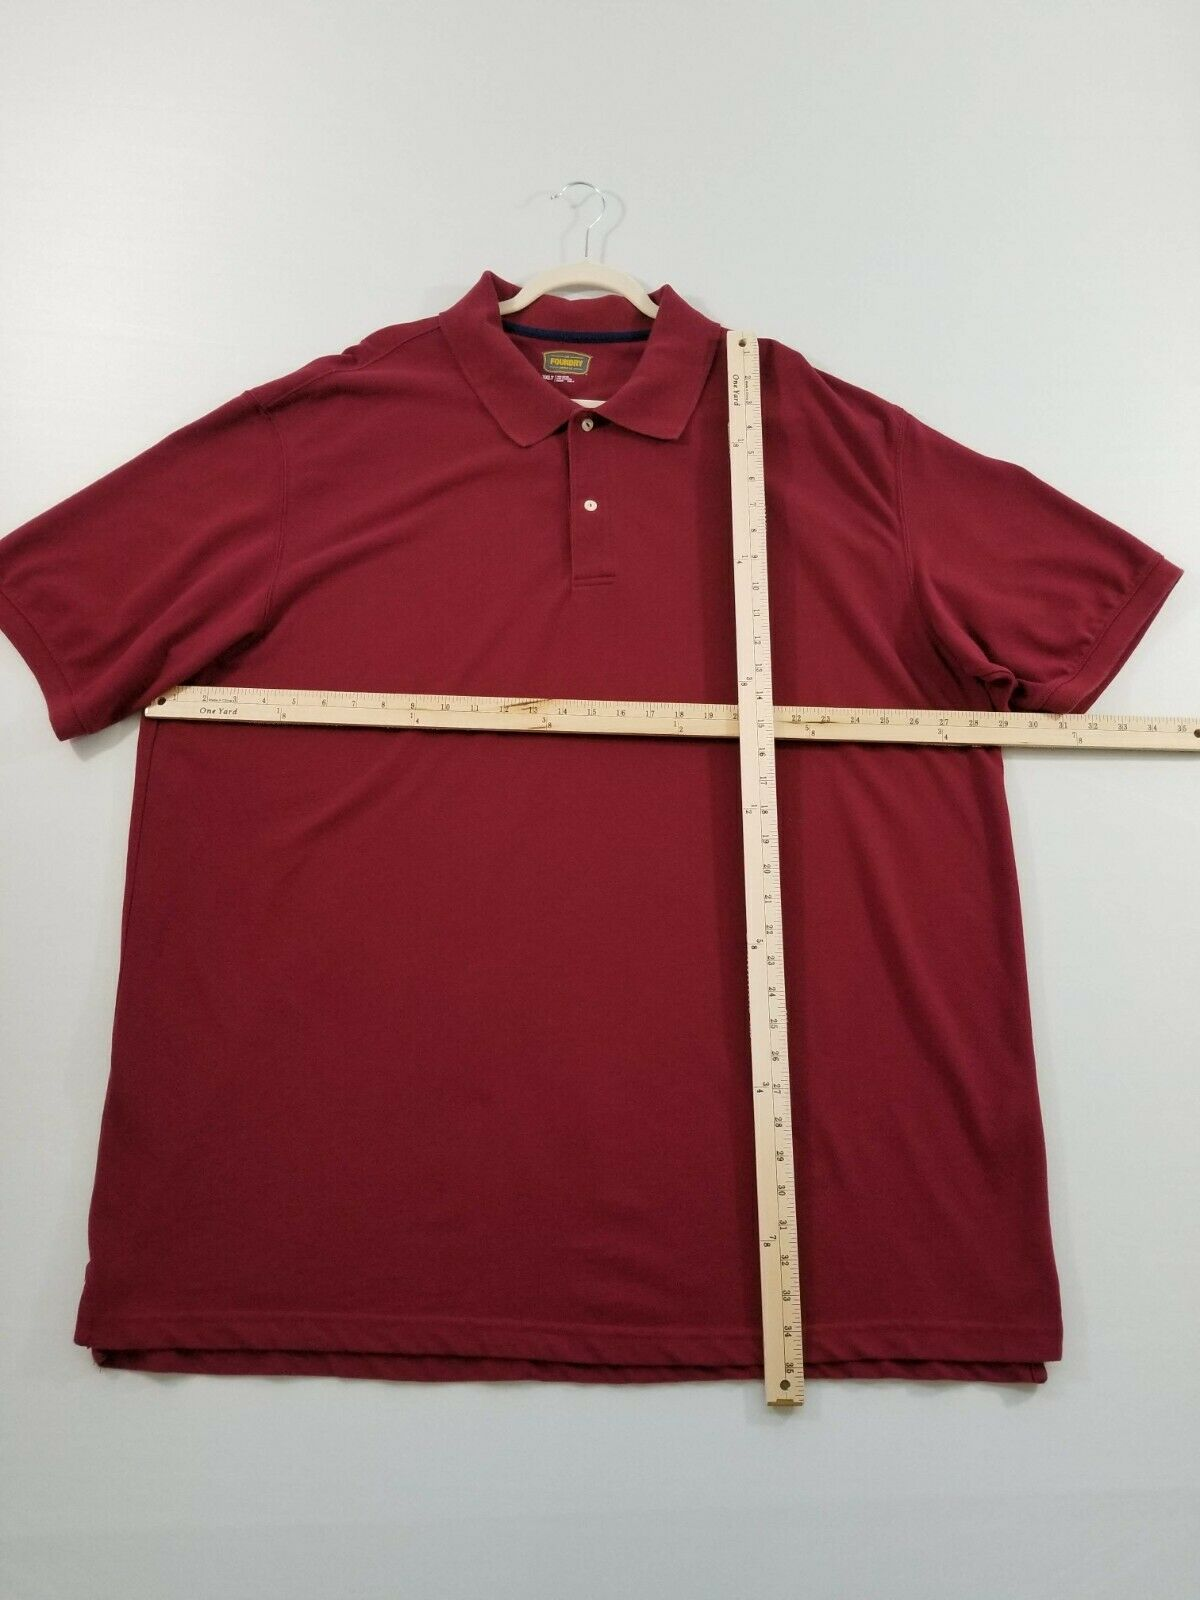 Foundry Men's Polo Shirt 3XLT Tall Red Casual Pop… - image 6